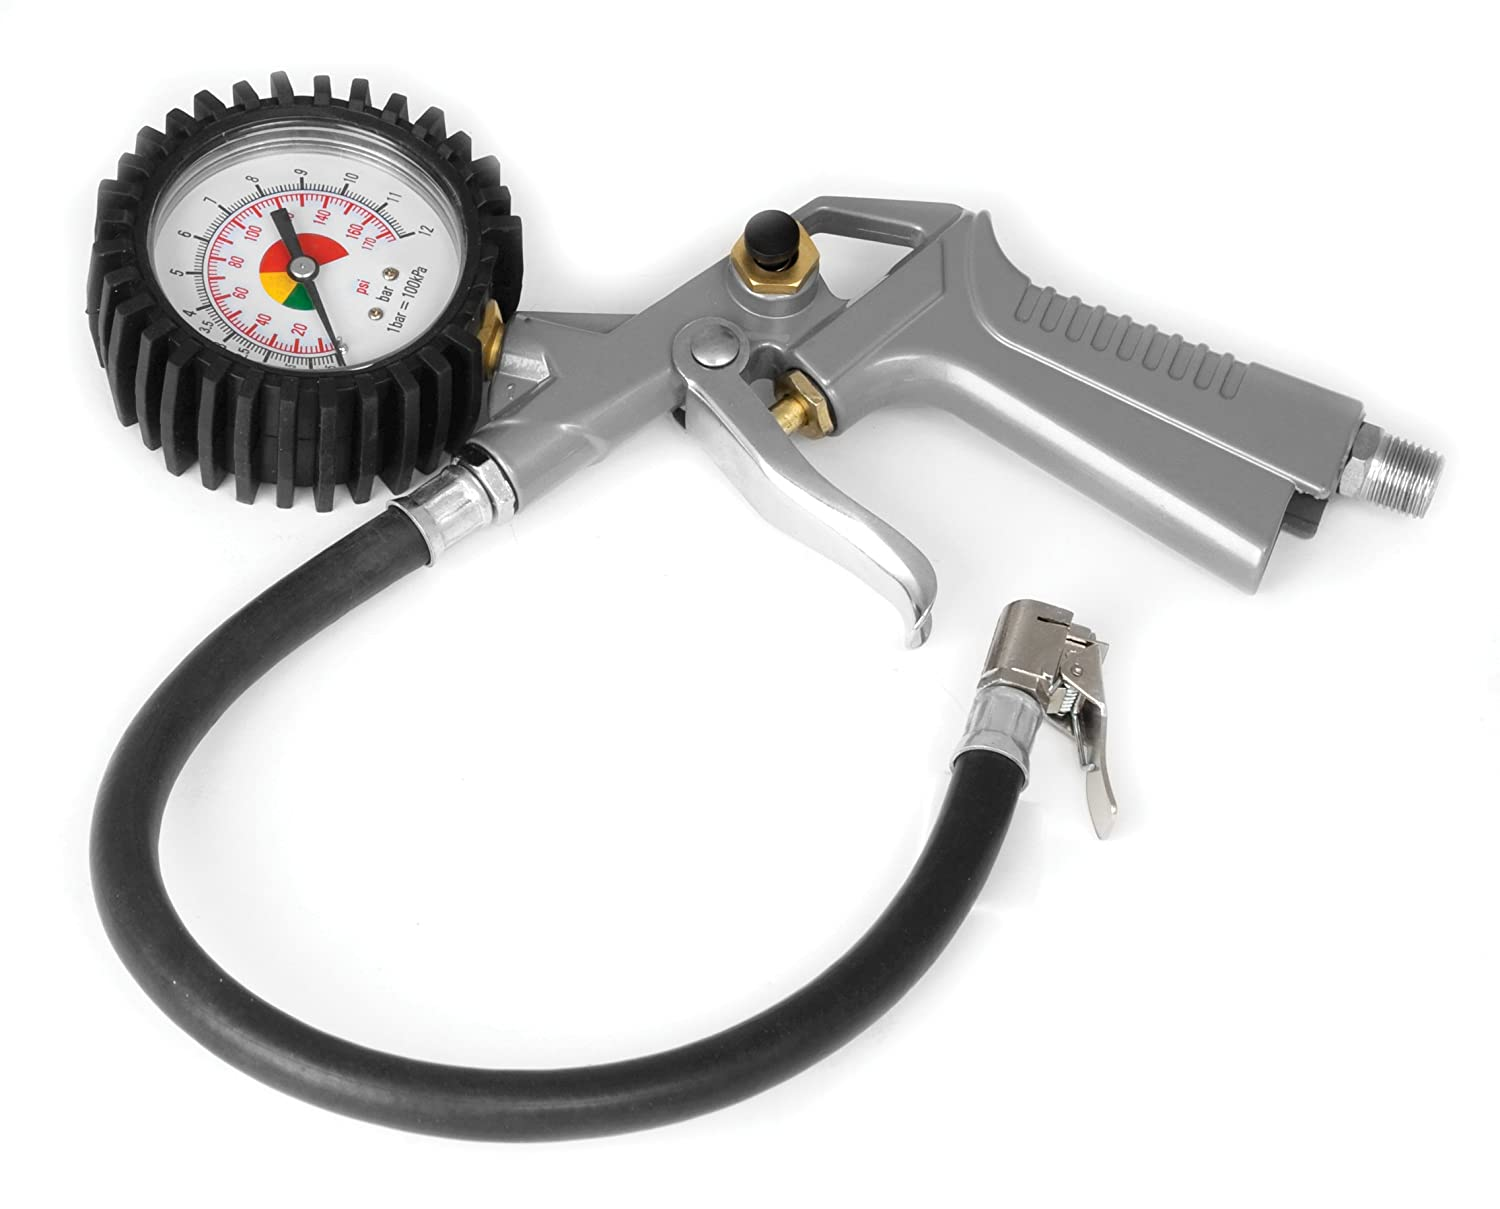 Performance Tool M521 Tire Inflator with Dial Gauge